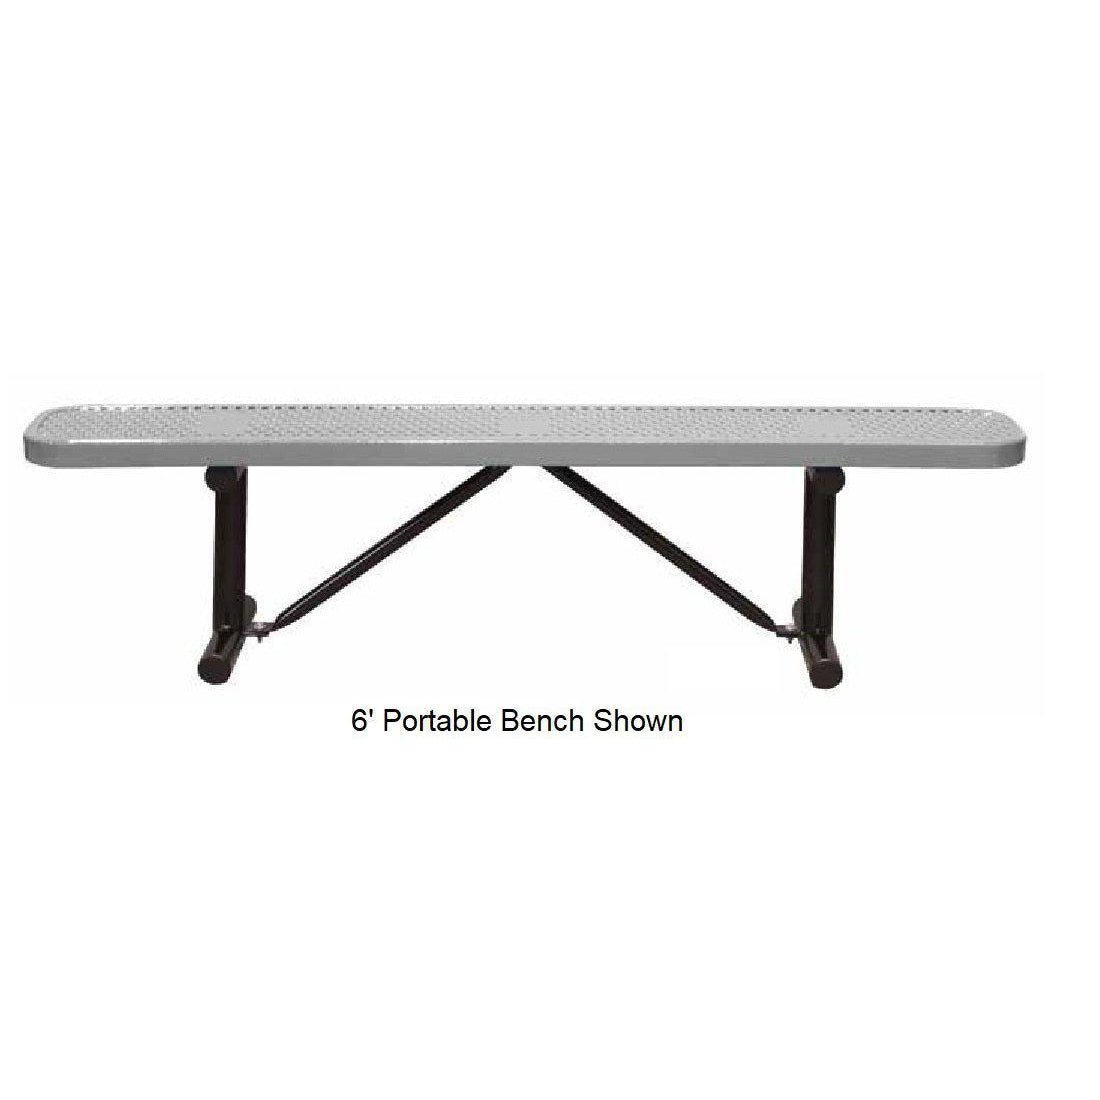 4' Standard Perforated Bench Without Back, Surface Mount